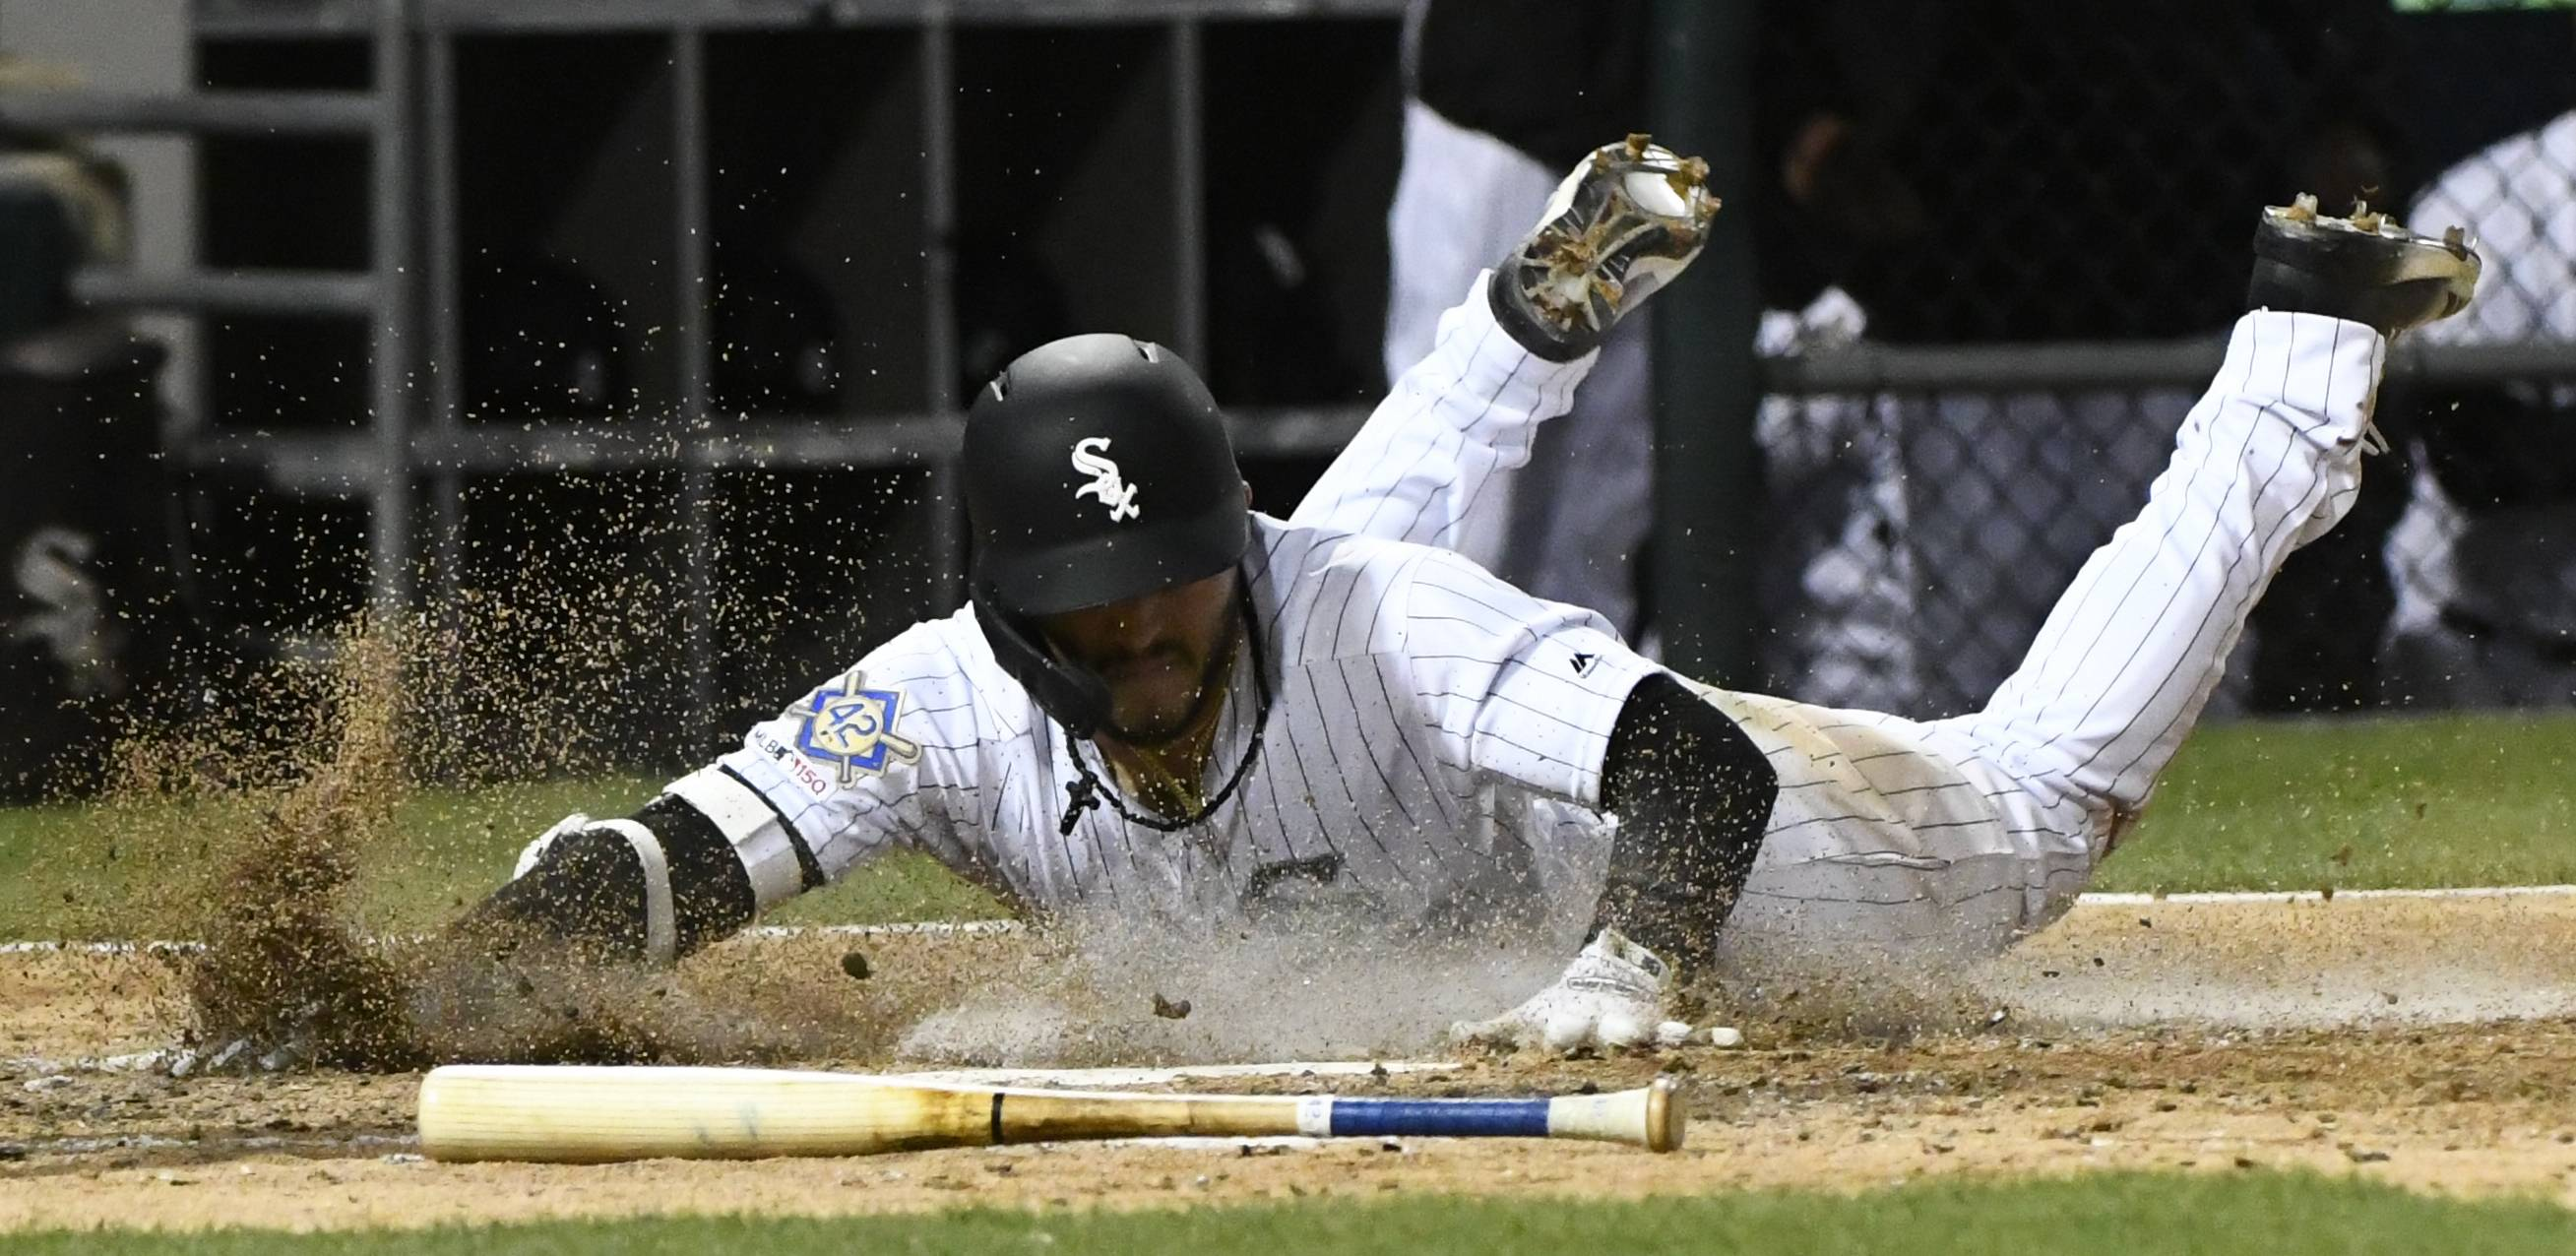 Chicago White Sox's Yolmer Sanchez scores on a double by Leury Garcia during the fifth inning of a baseball game against the Kansas City Royals, Monday, April 15, 2019, in Chicago.